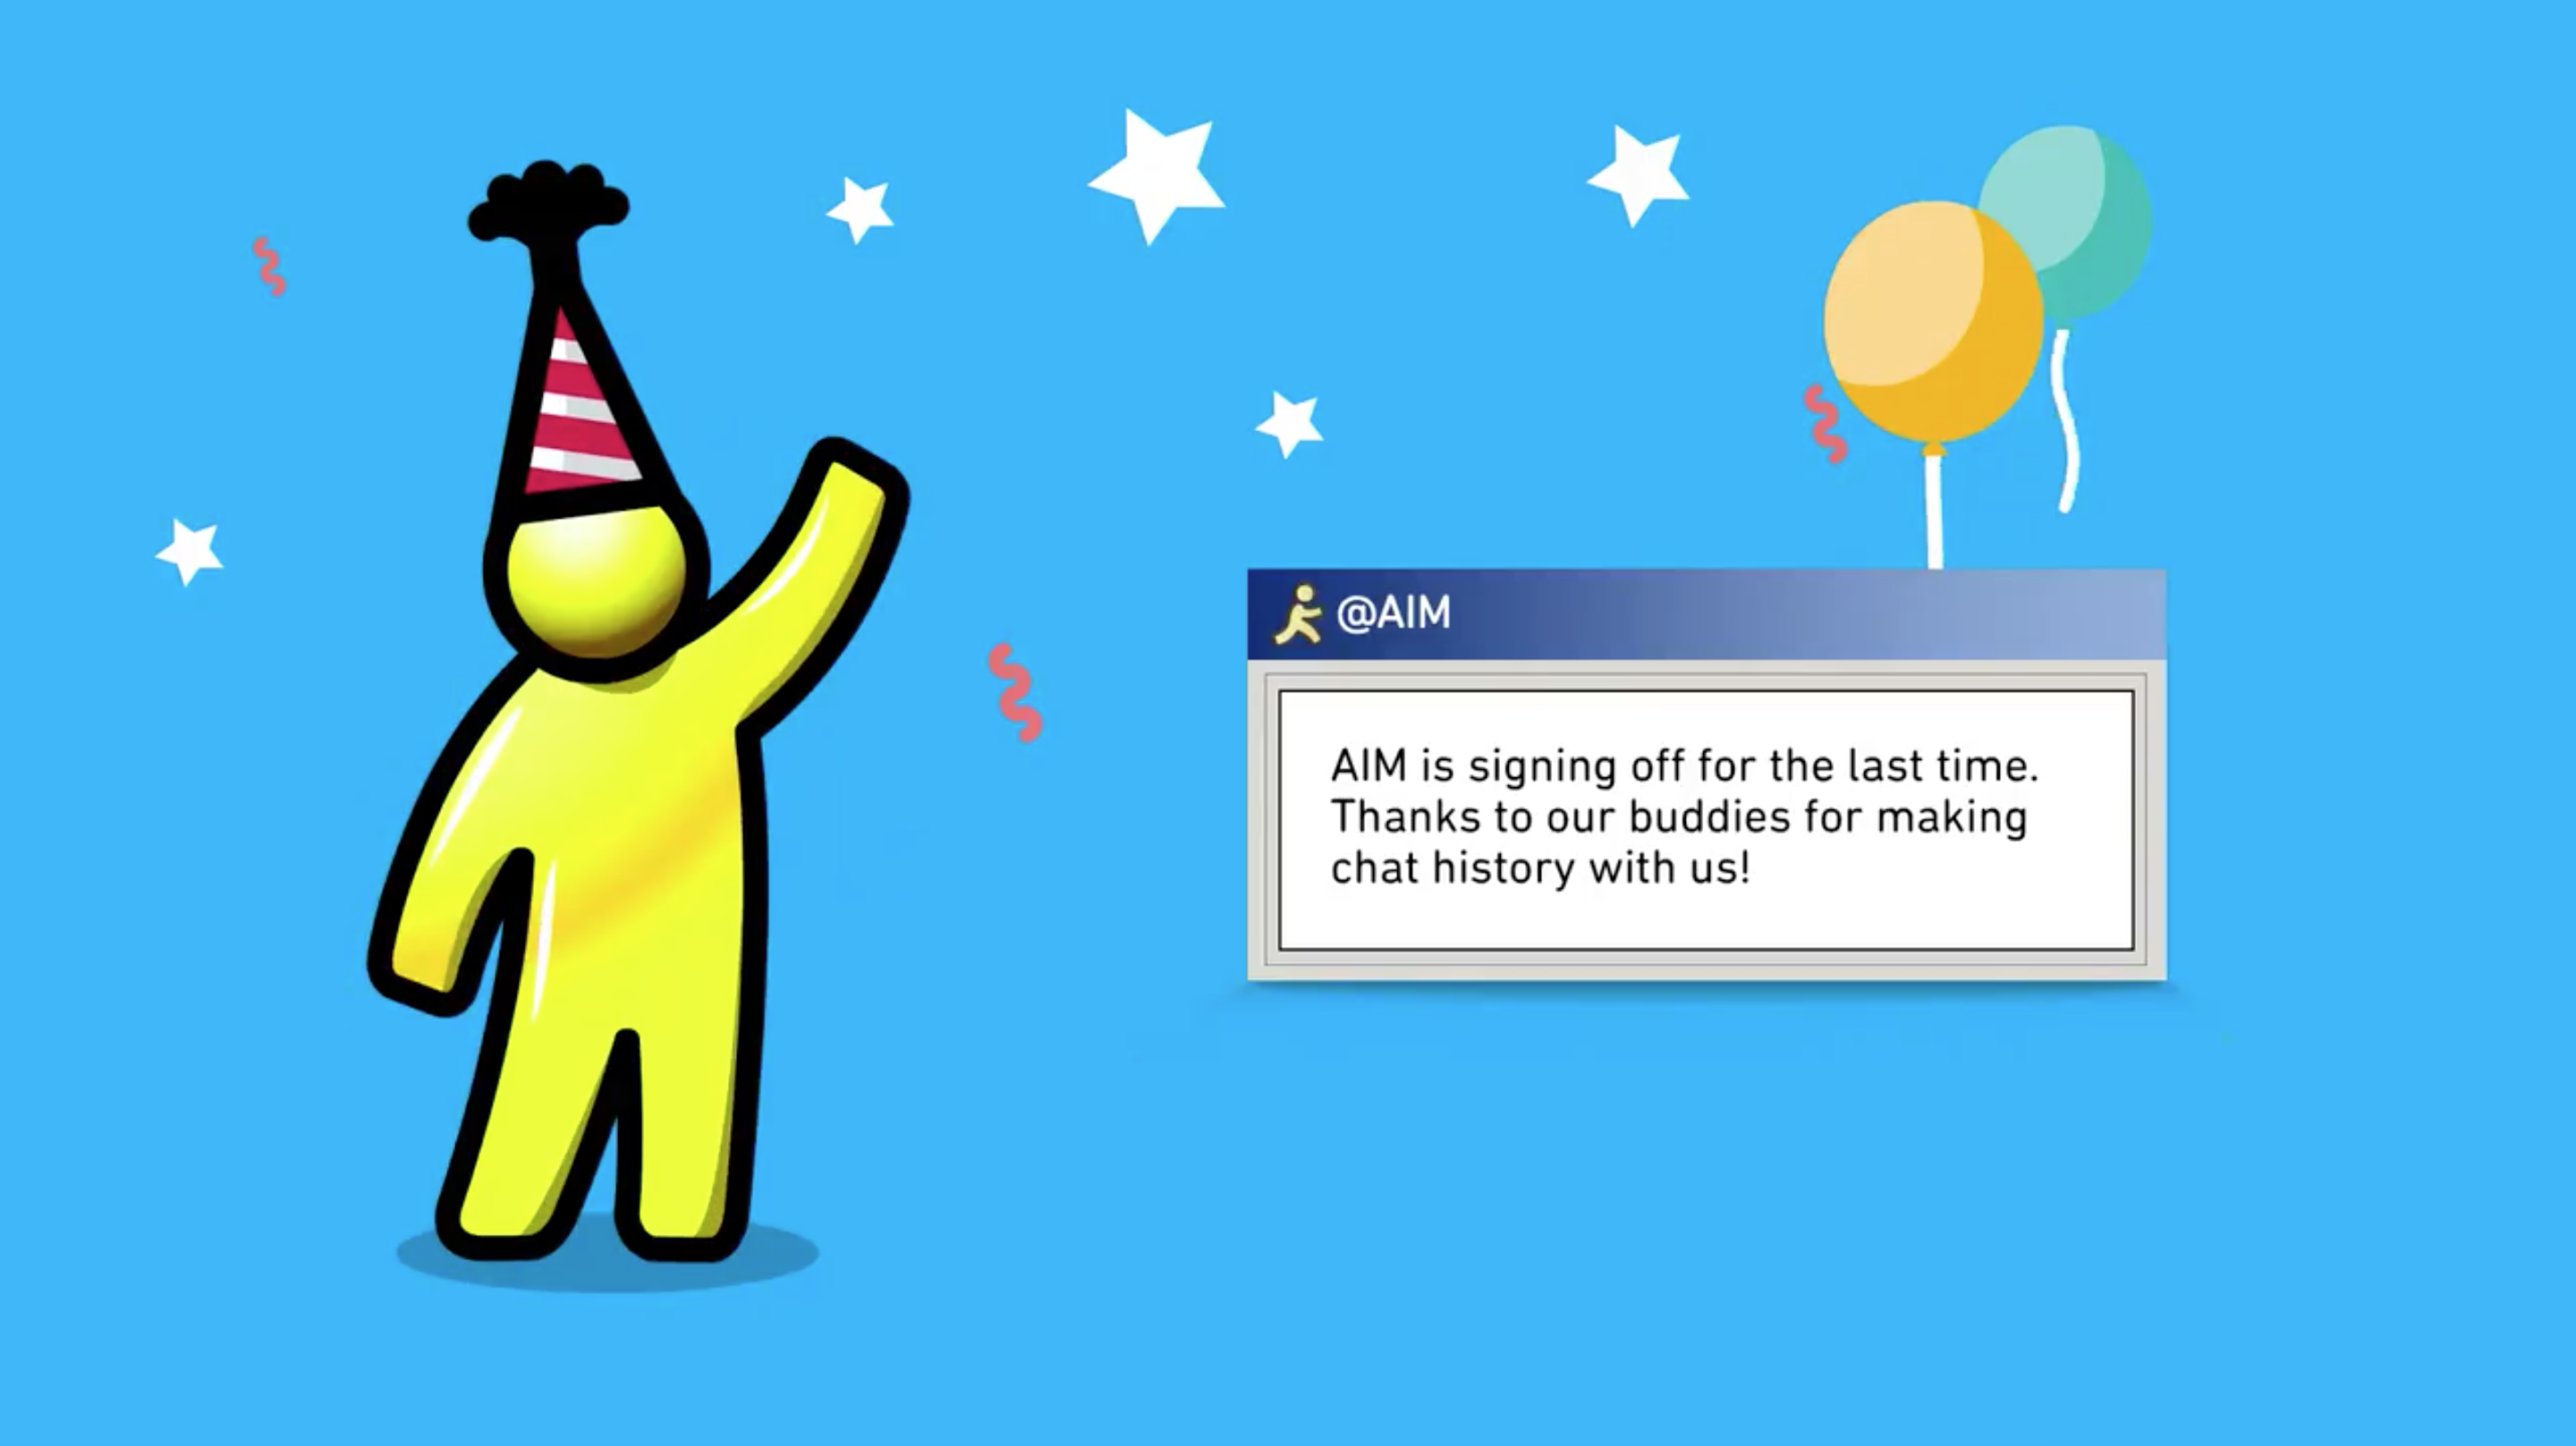 AOL Instant Messenger 'Running Man' waving goodbye